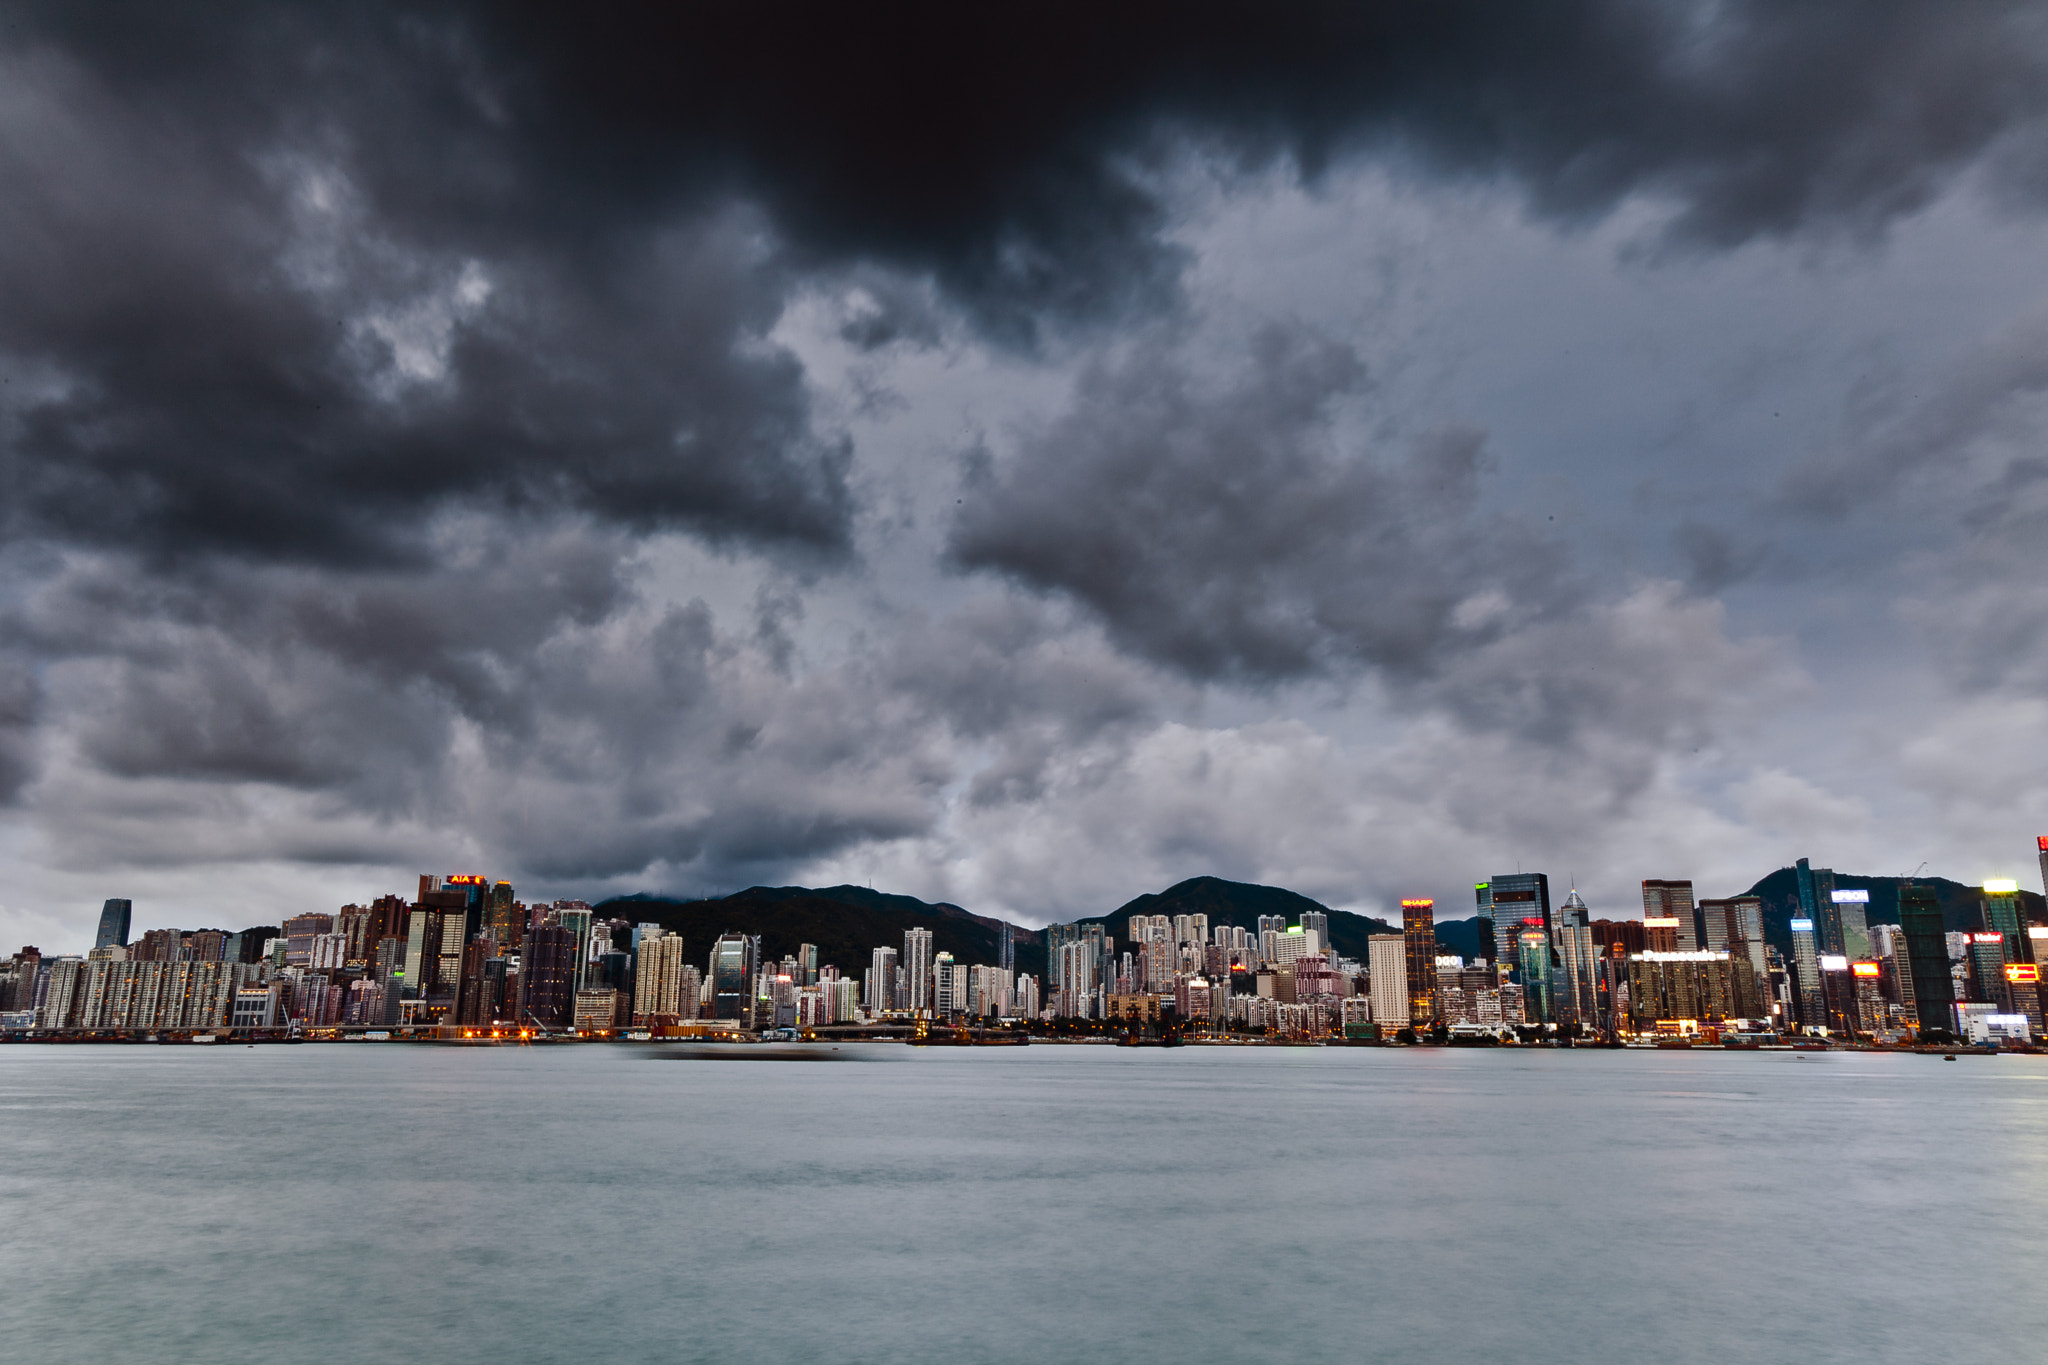 Photograph today, Hong Kong by William Tsang on 500px